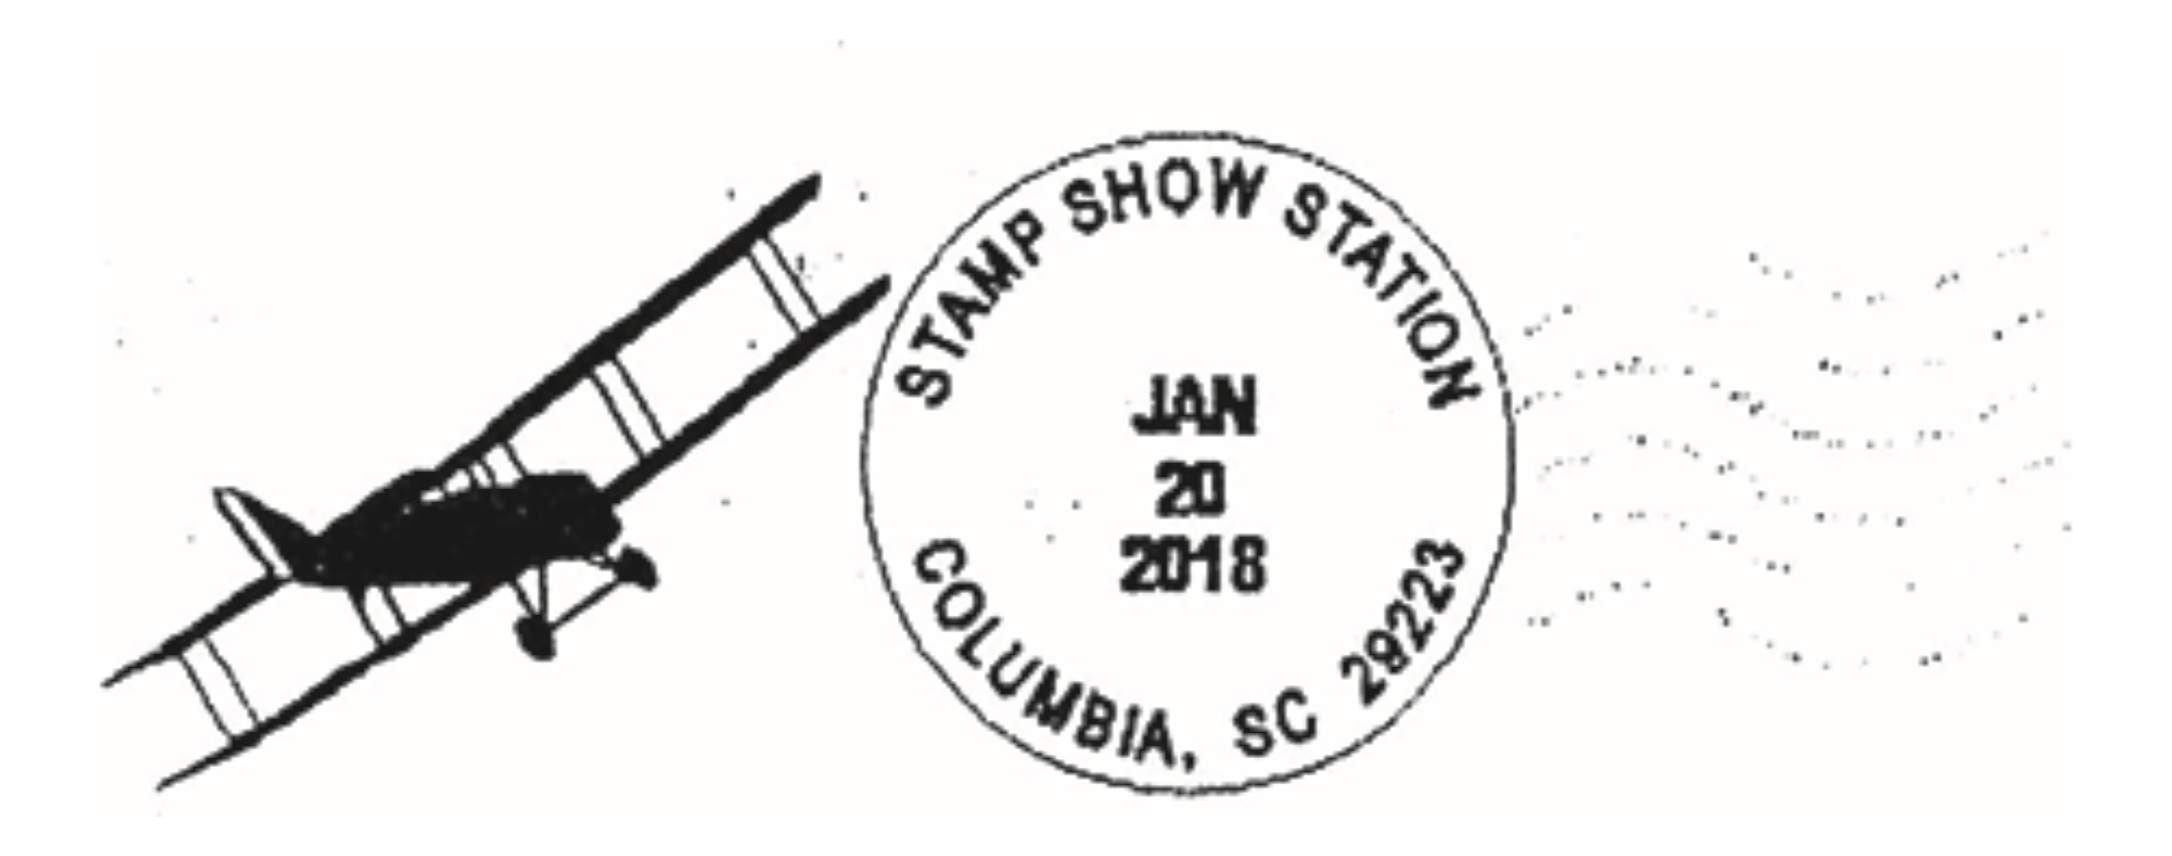 Columbia South Carolina Stamp Show Station